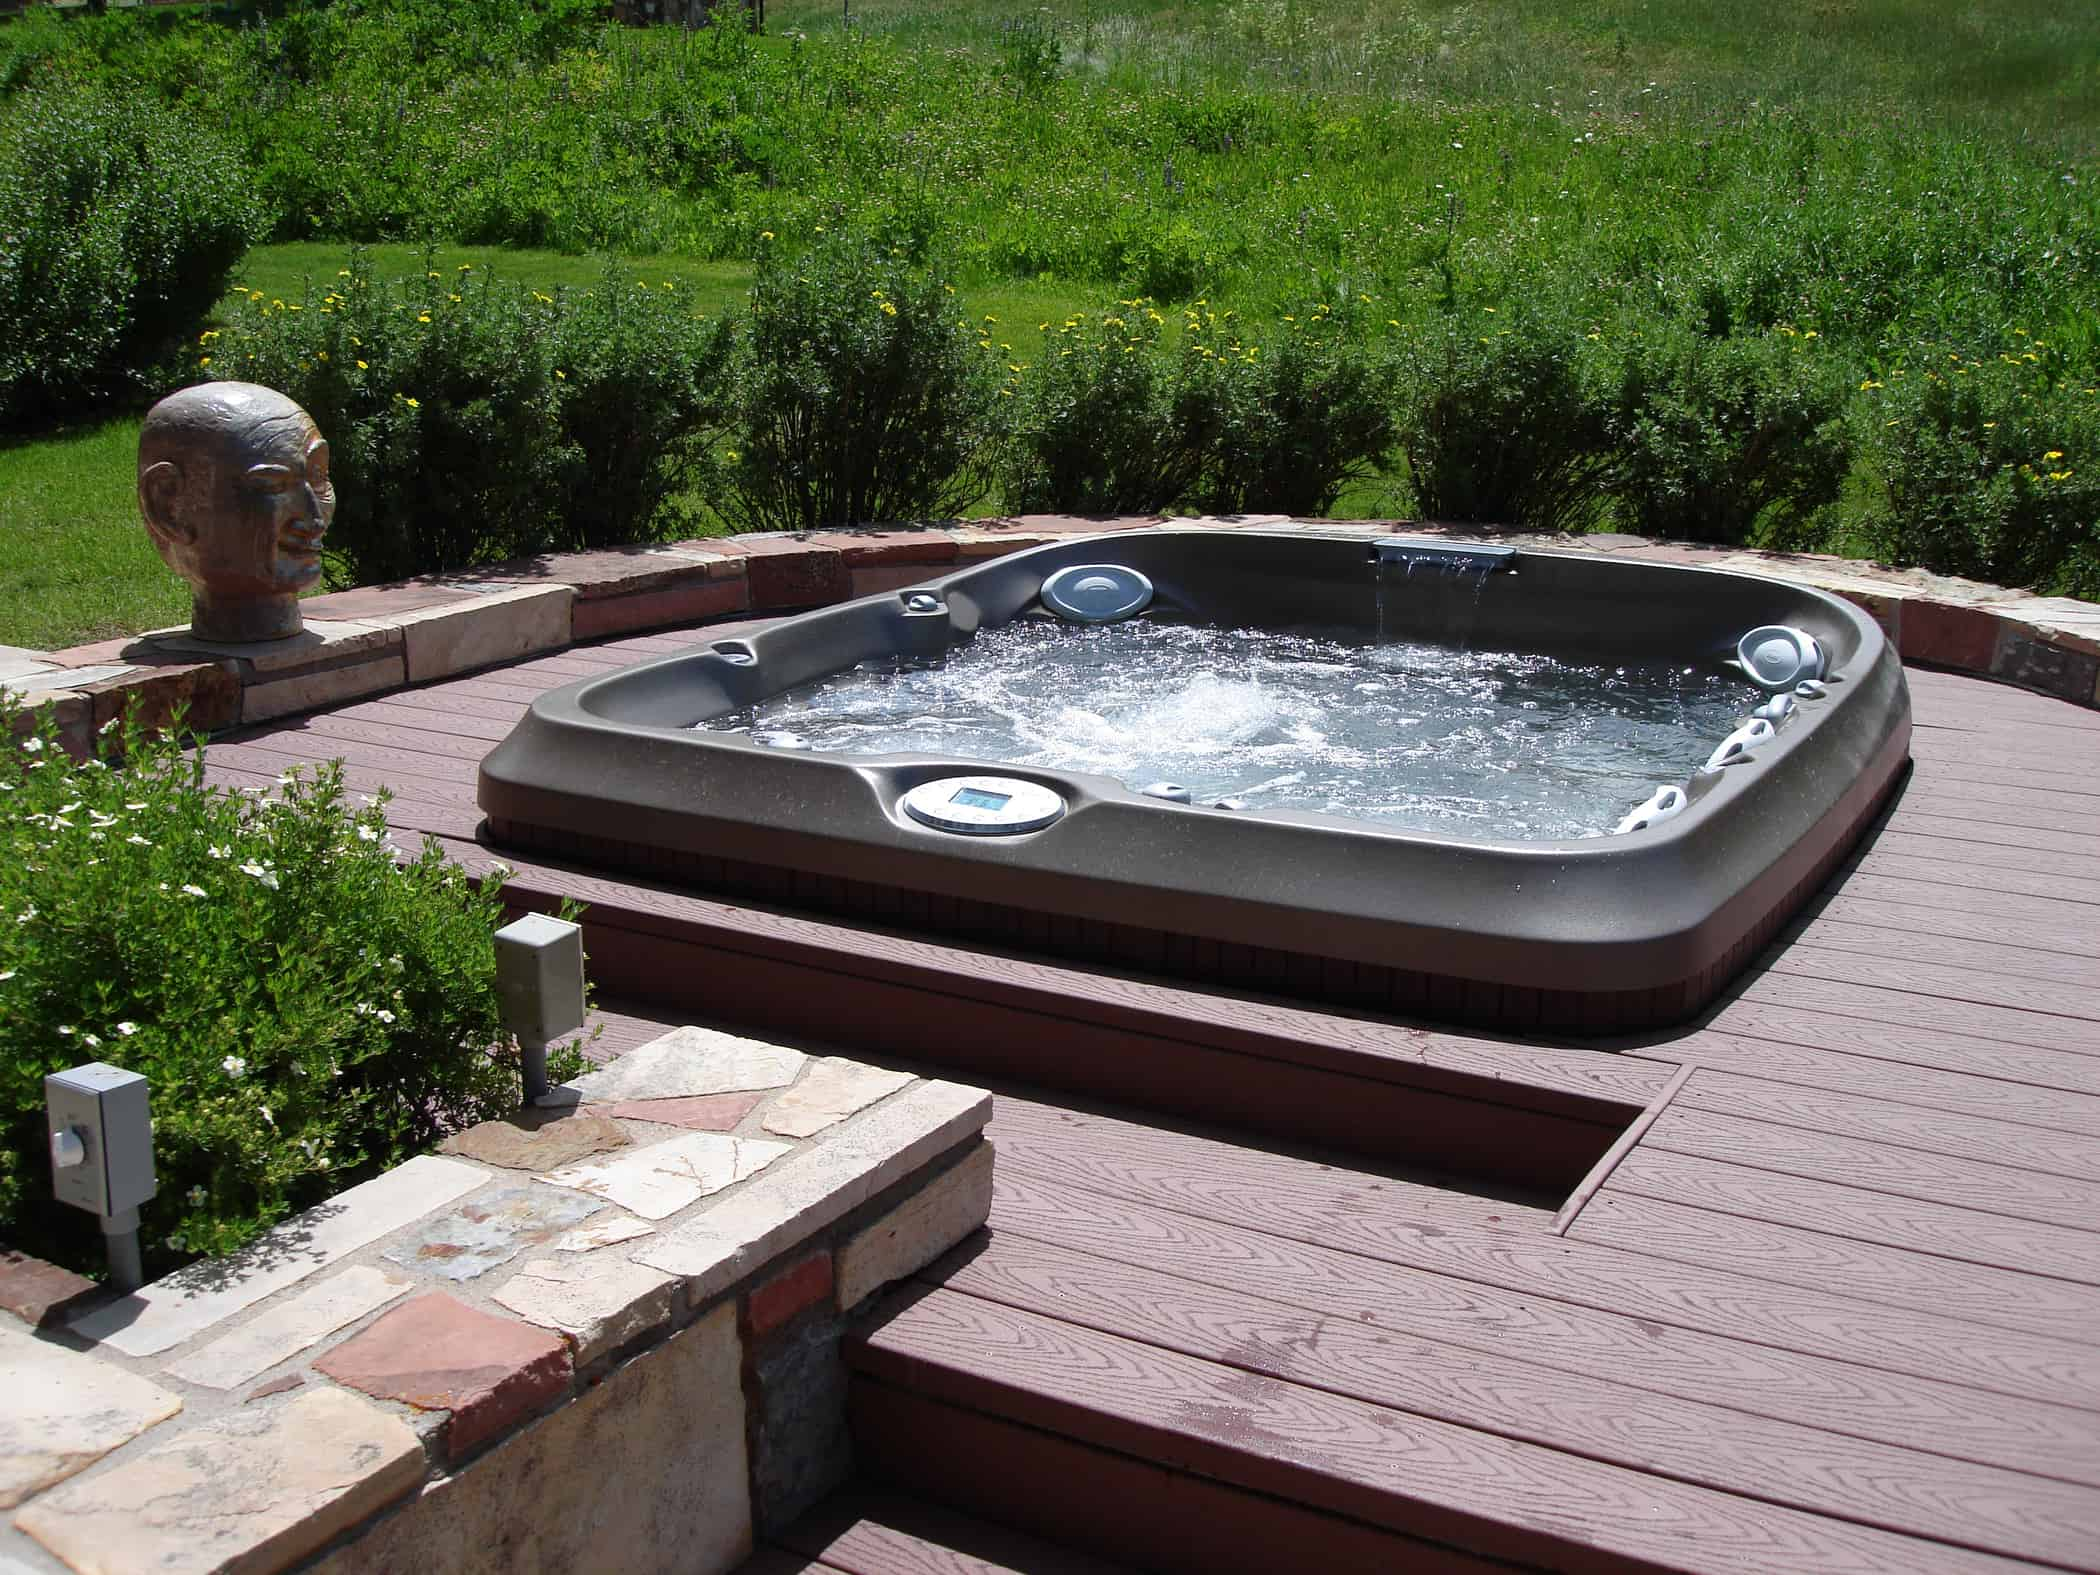 Steps to Buying Your First Hot Tub